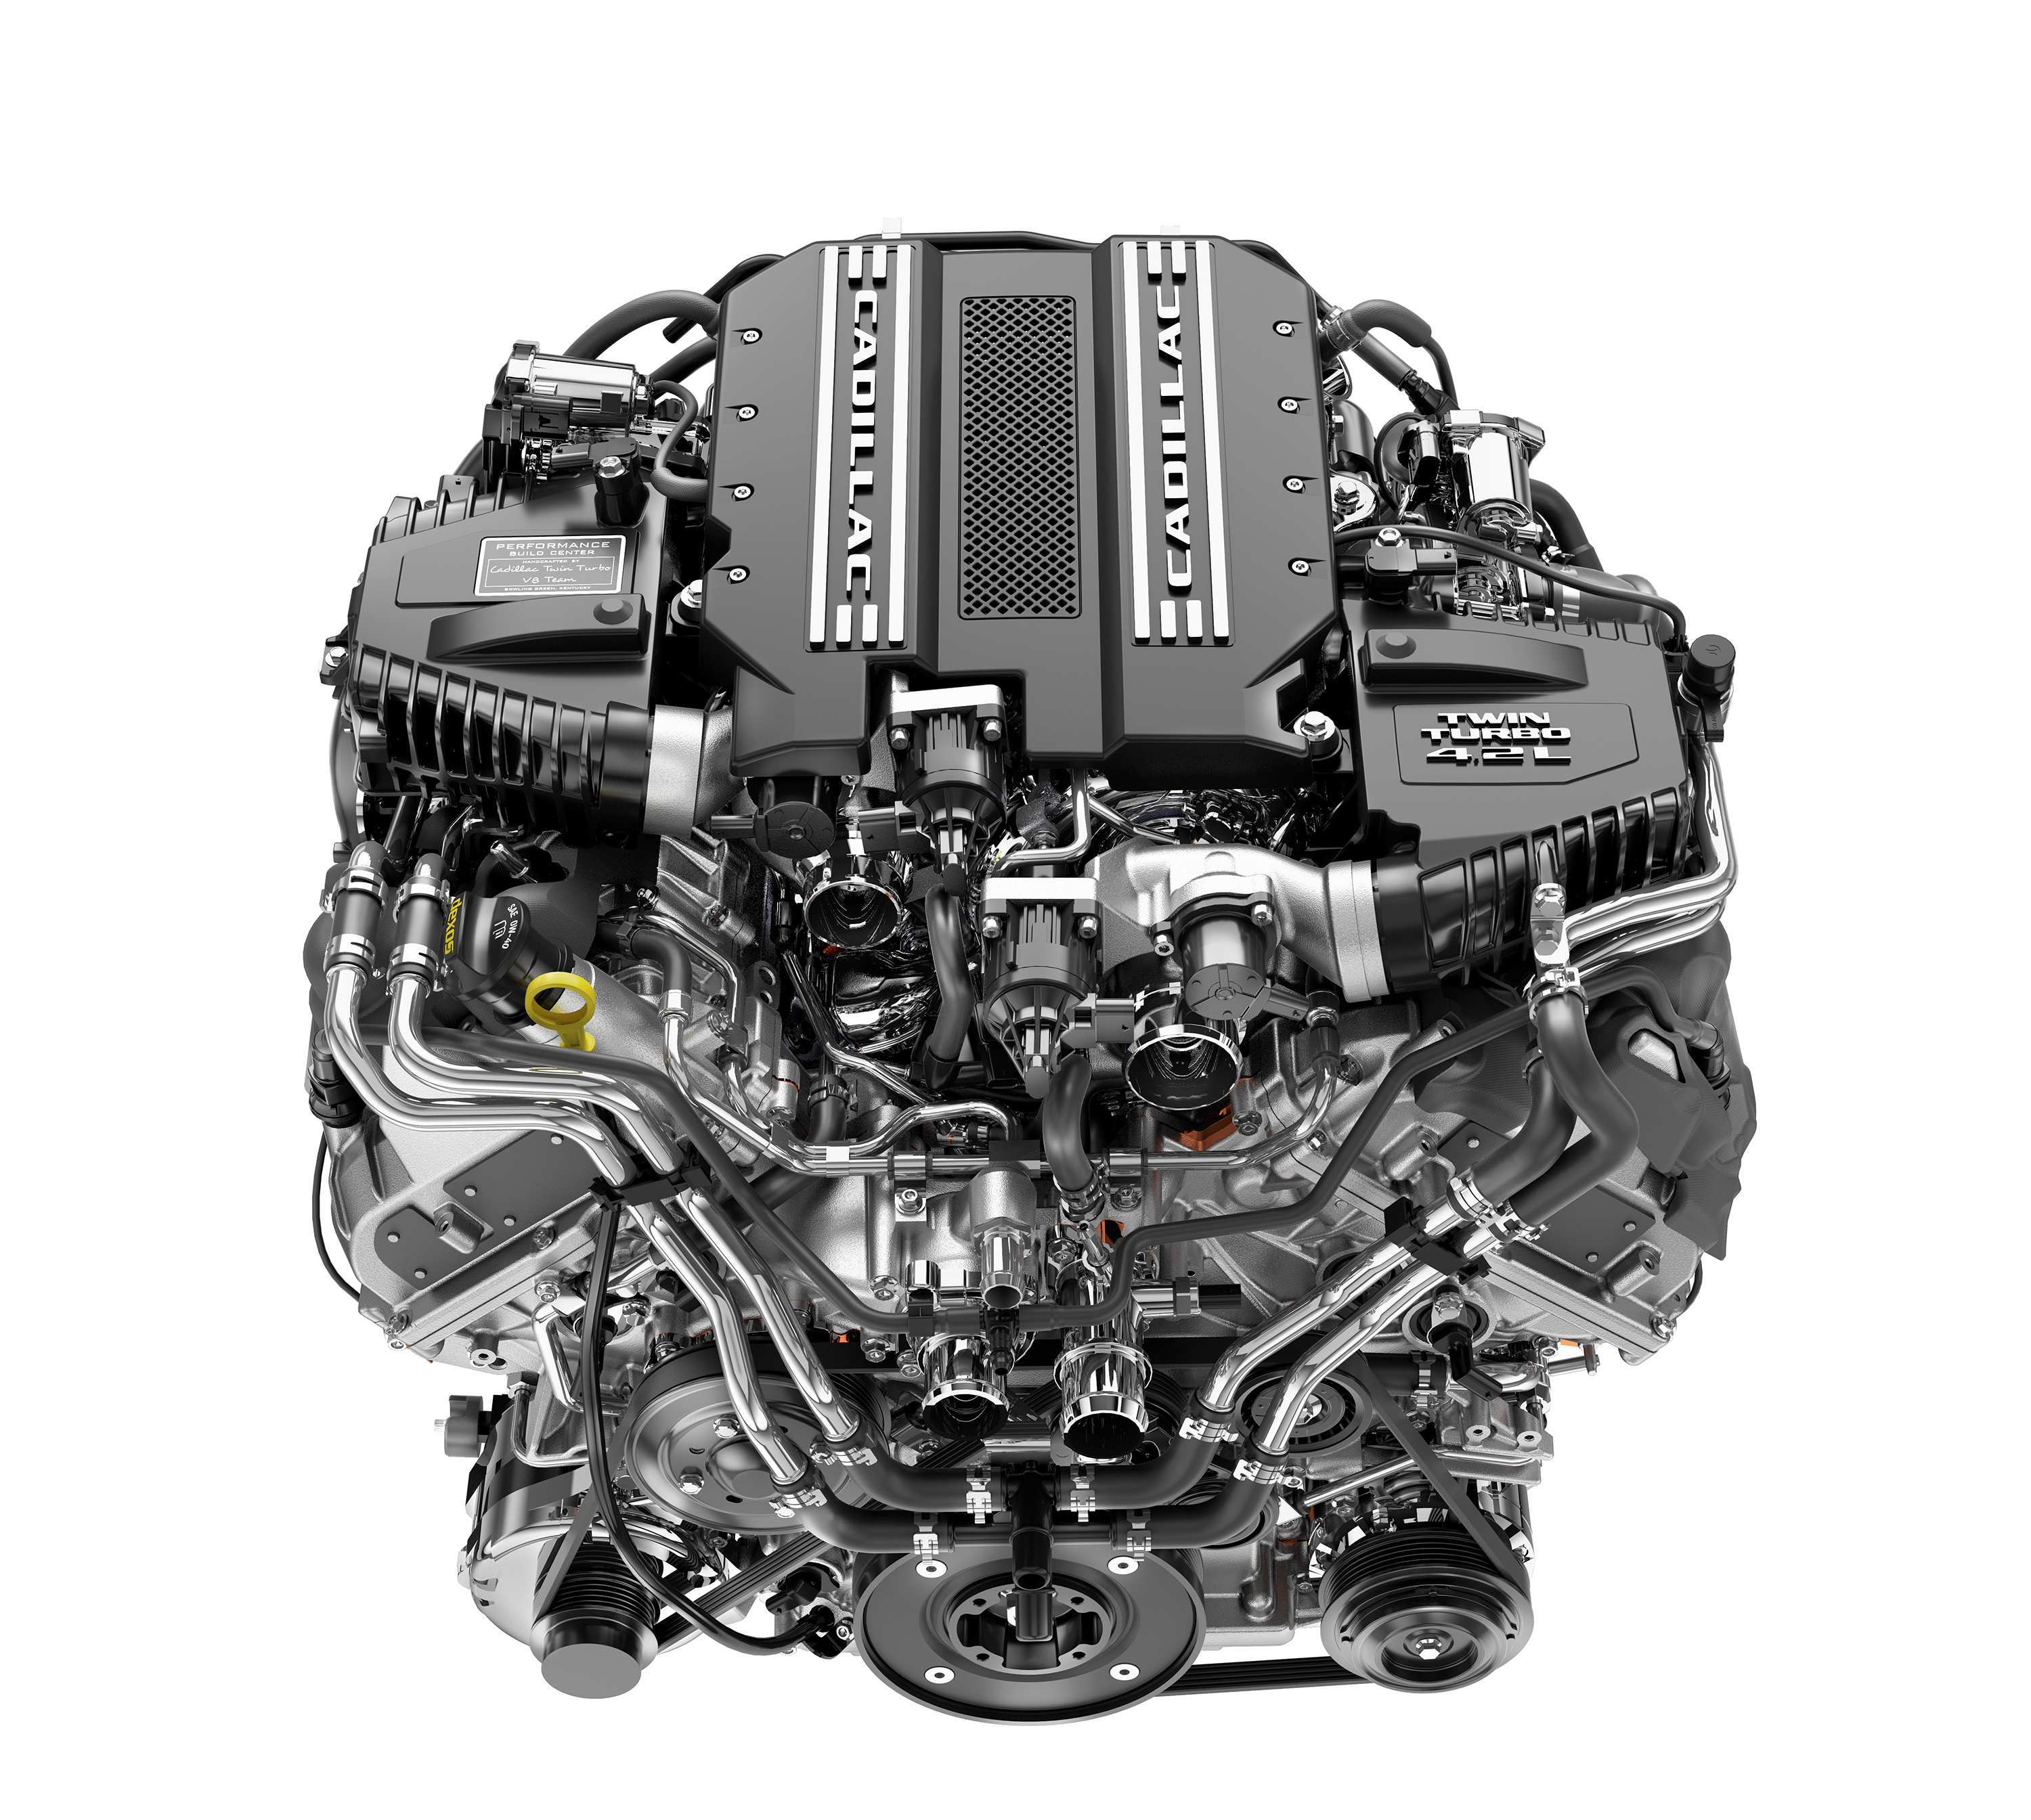 30 All New 2019 Cadillac V8 Price by 2019 Cadillac V8